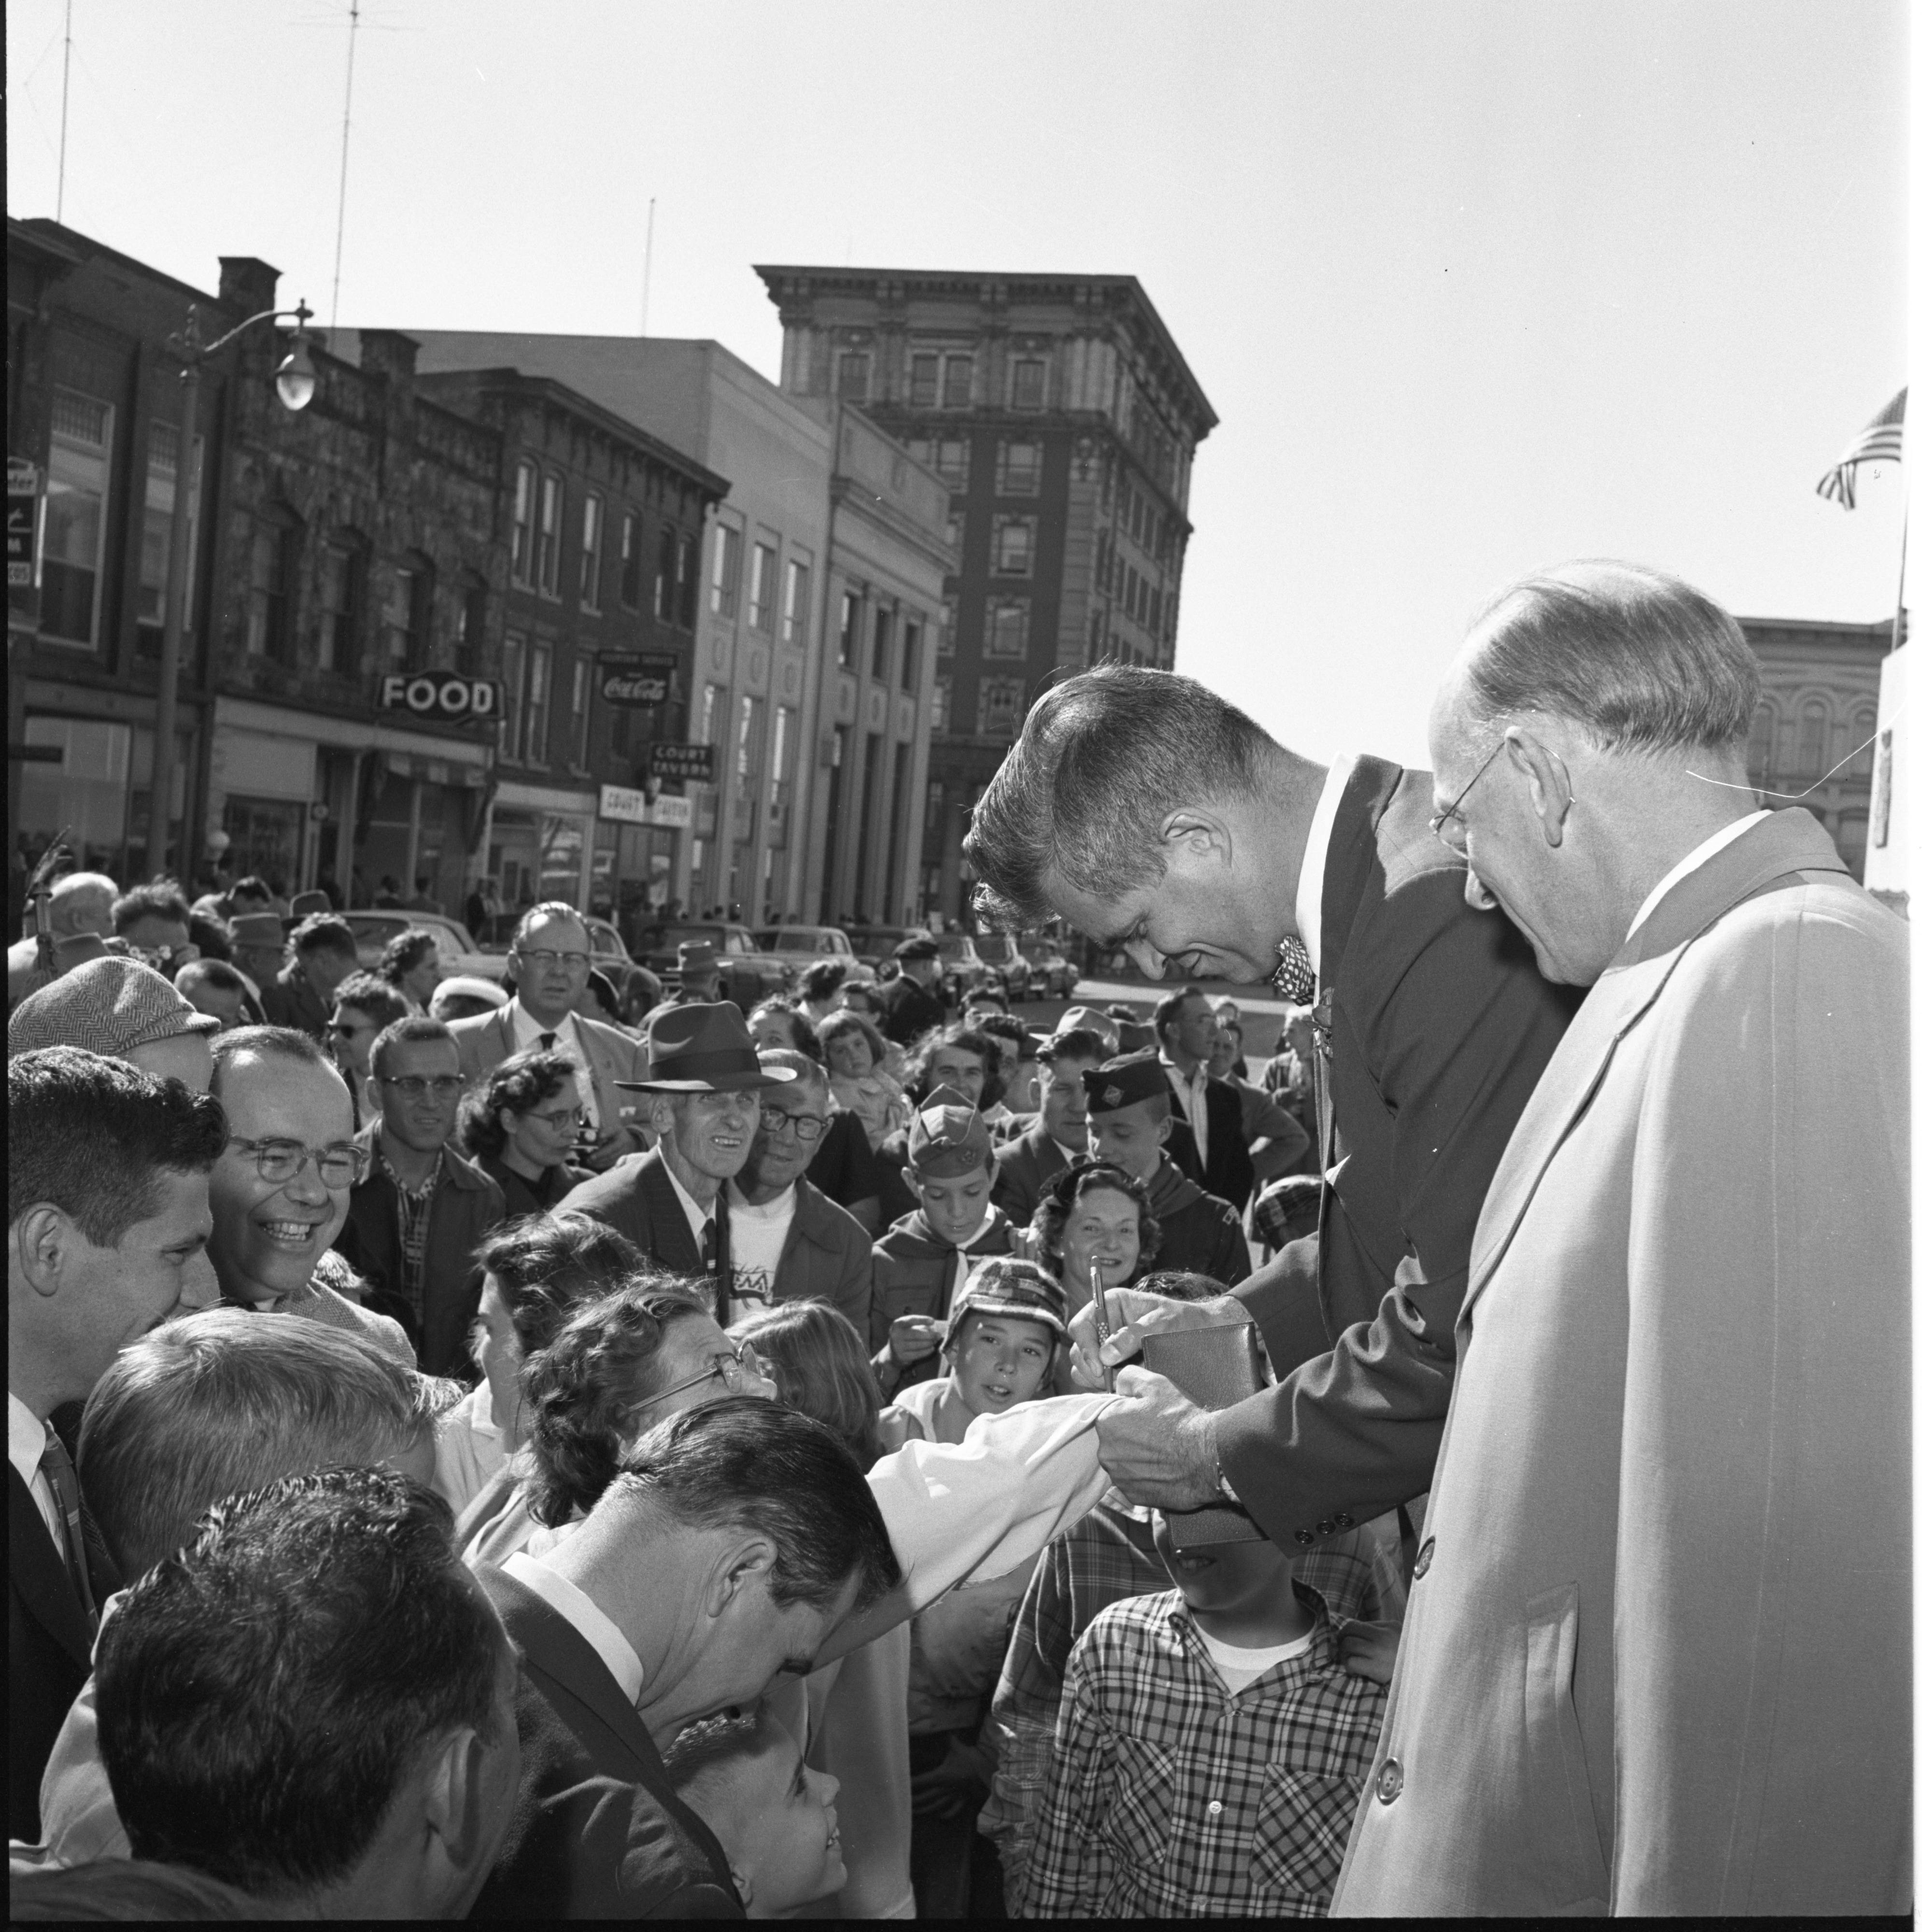 Gov. G. Mennen Williams Signs His Autograph At The Washtenaw County Building Dedication Ceremony, October 1956 image